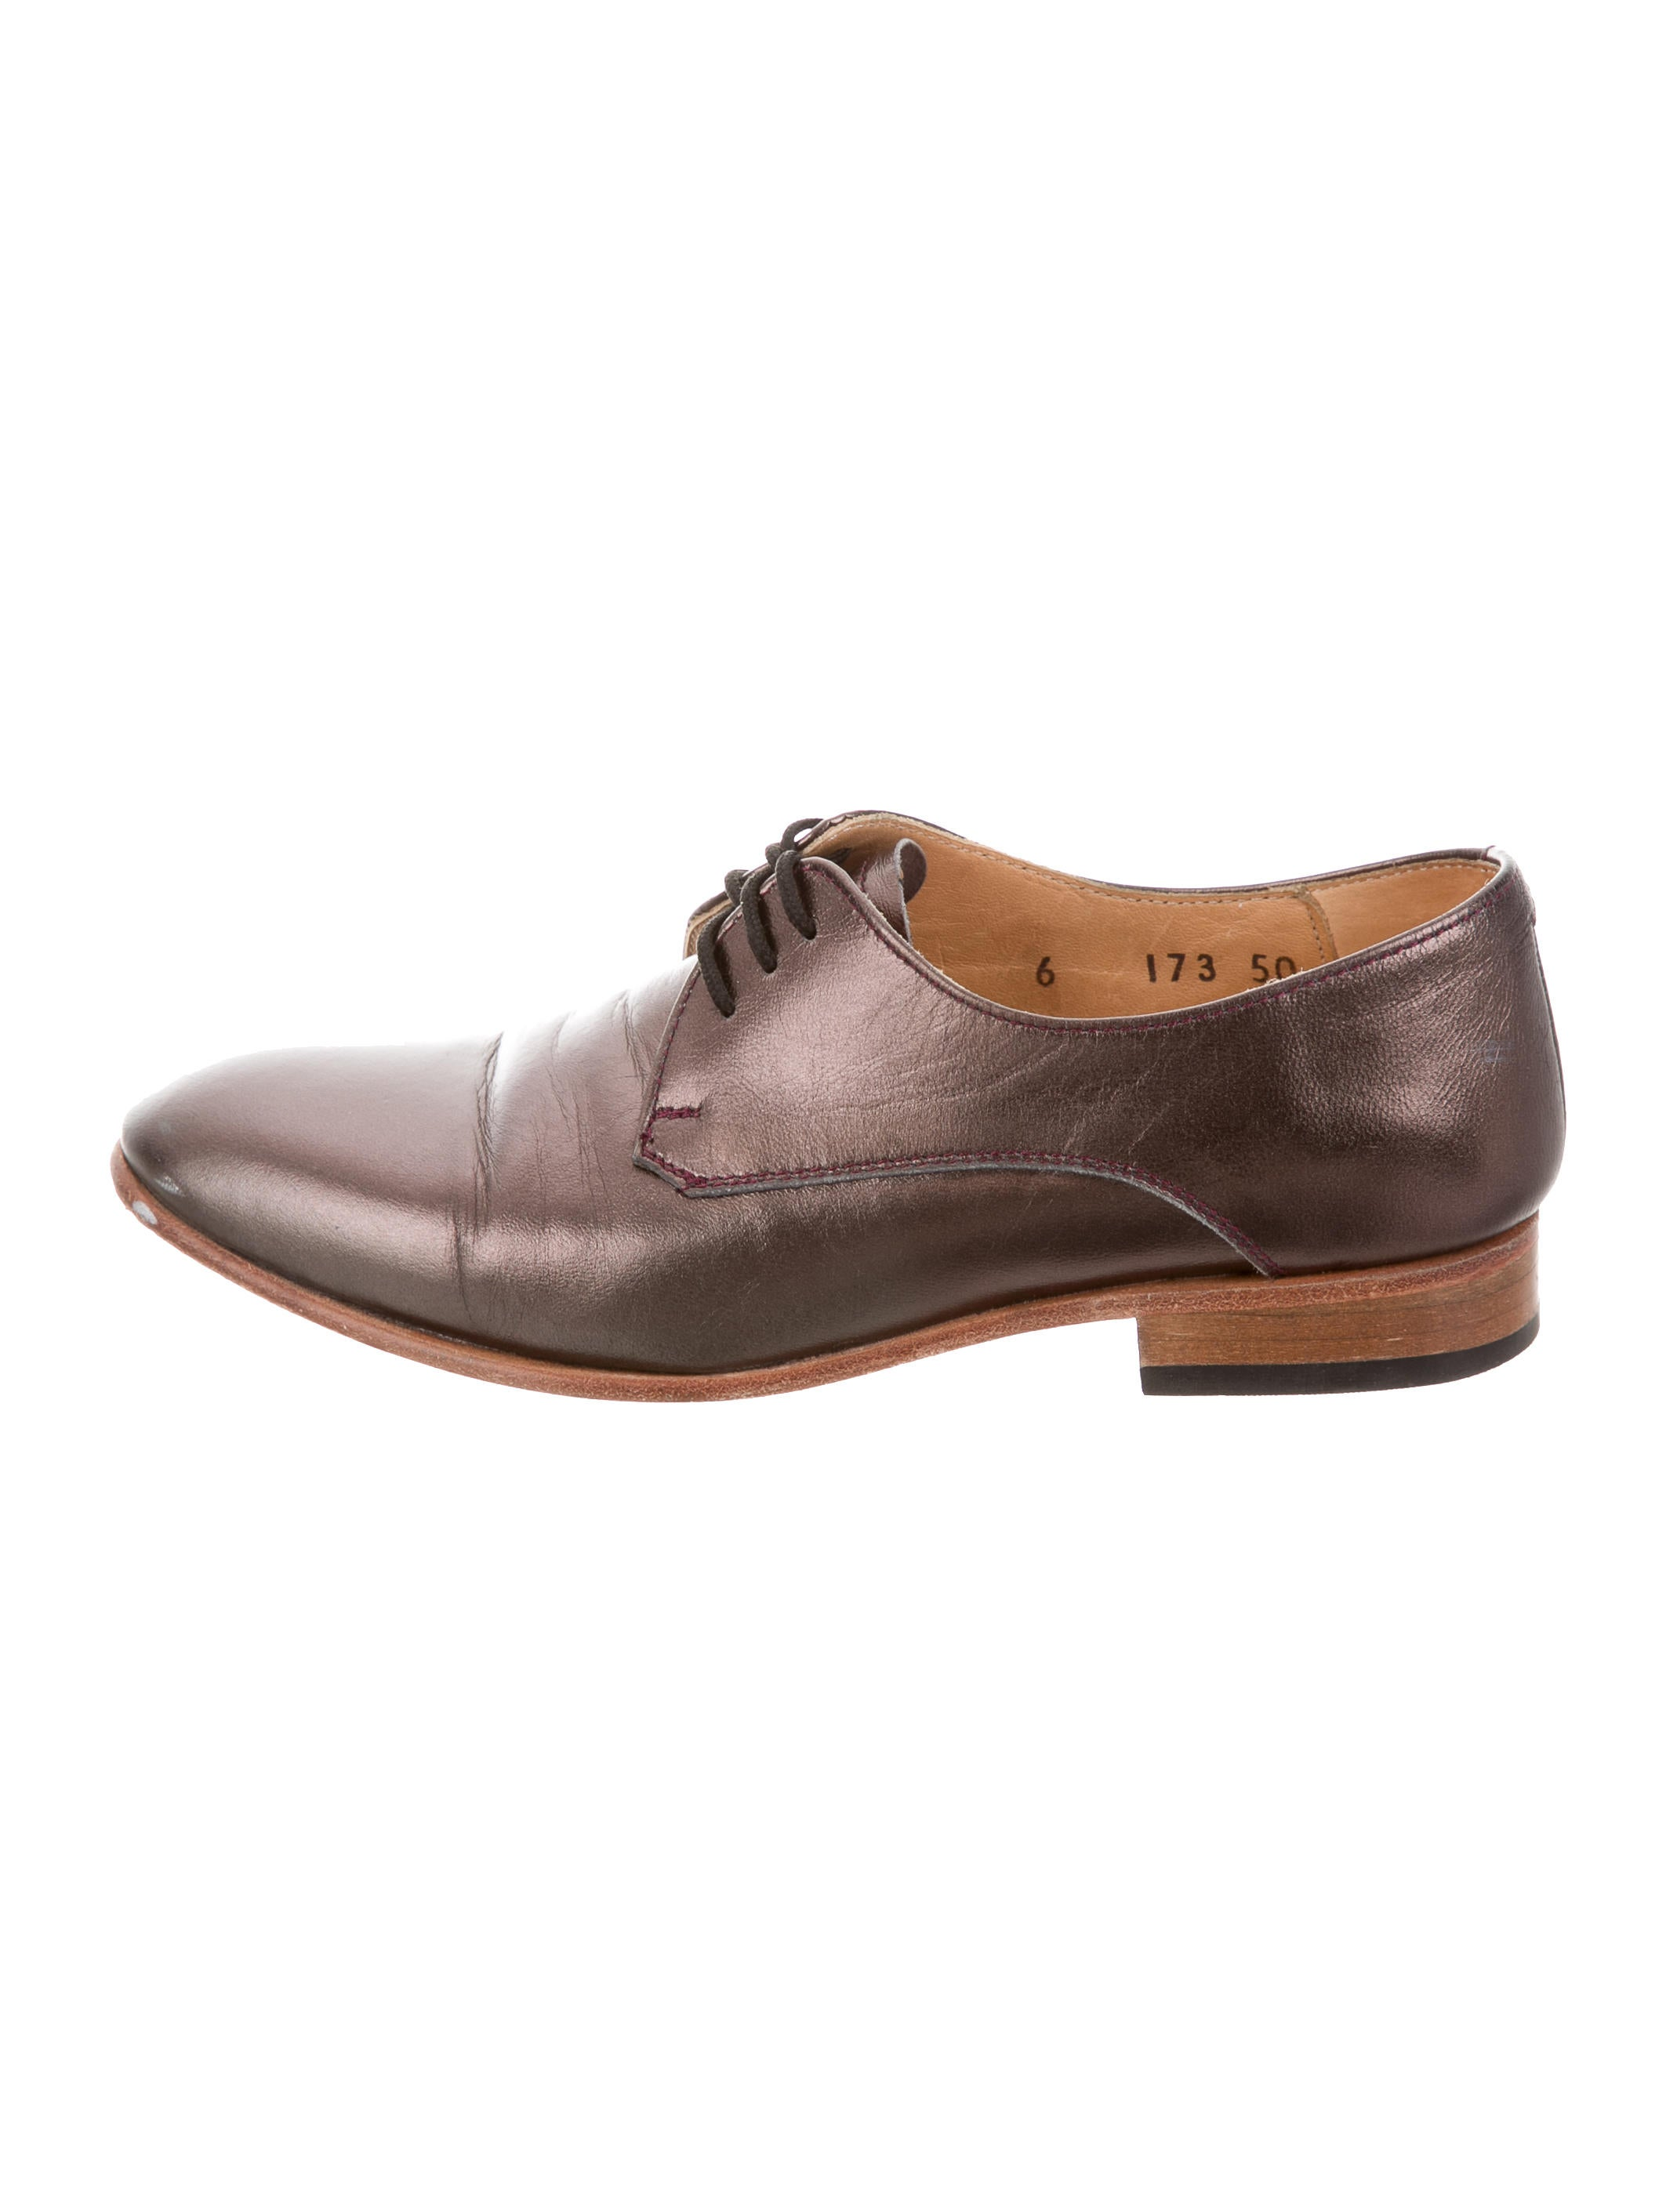 outlet best sale Dieppa Restrepo Metallic Leather Oxfords for sale cheap price newest cheap price cheap for sale LDY9UHvn